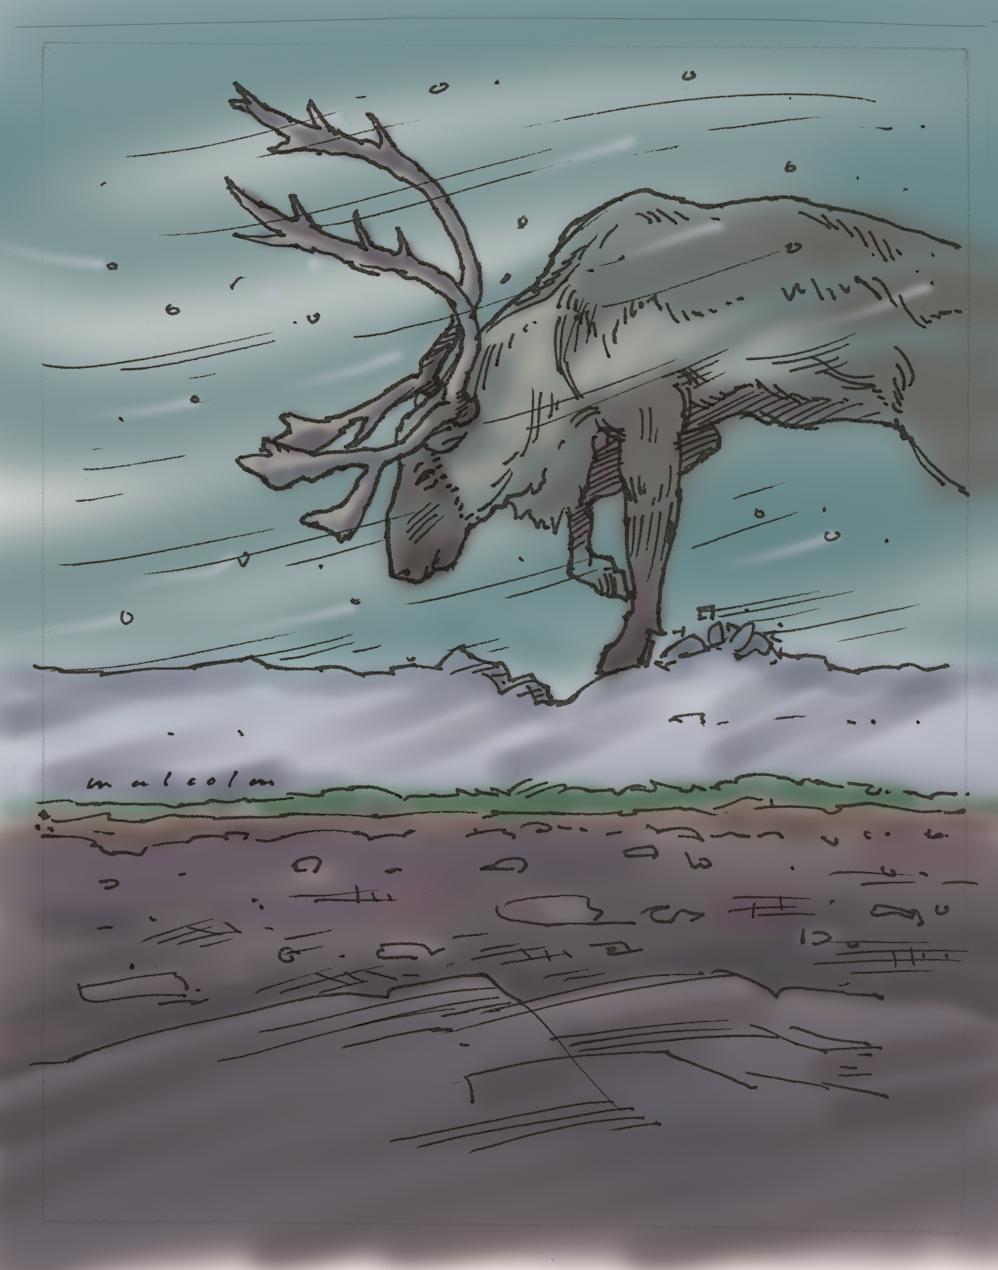 Illustration of caribou in snow storm